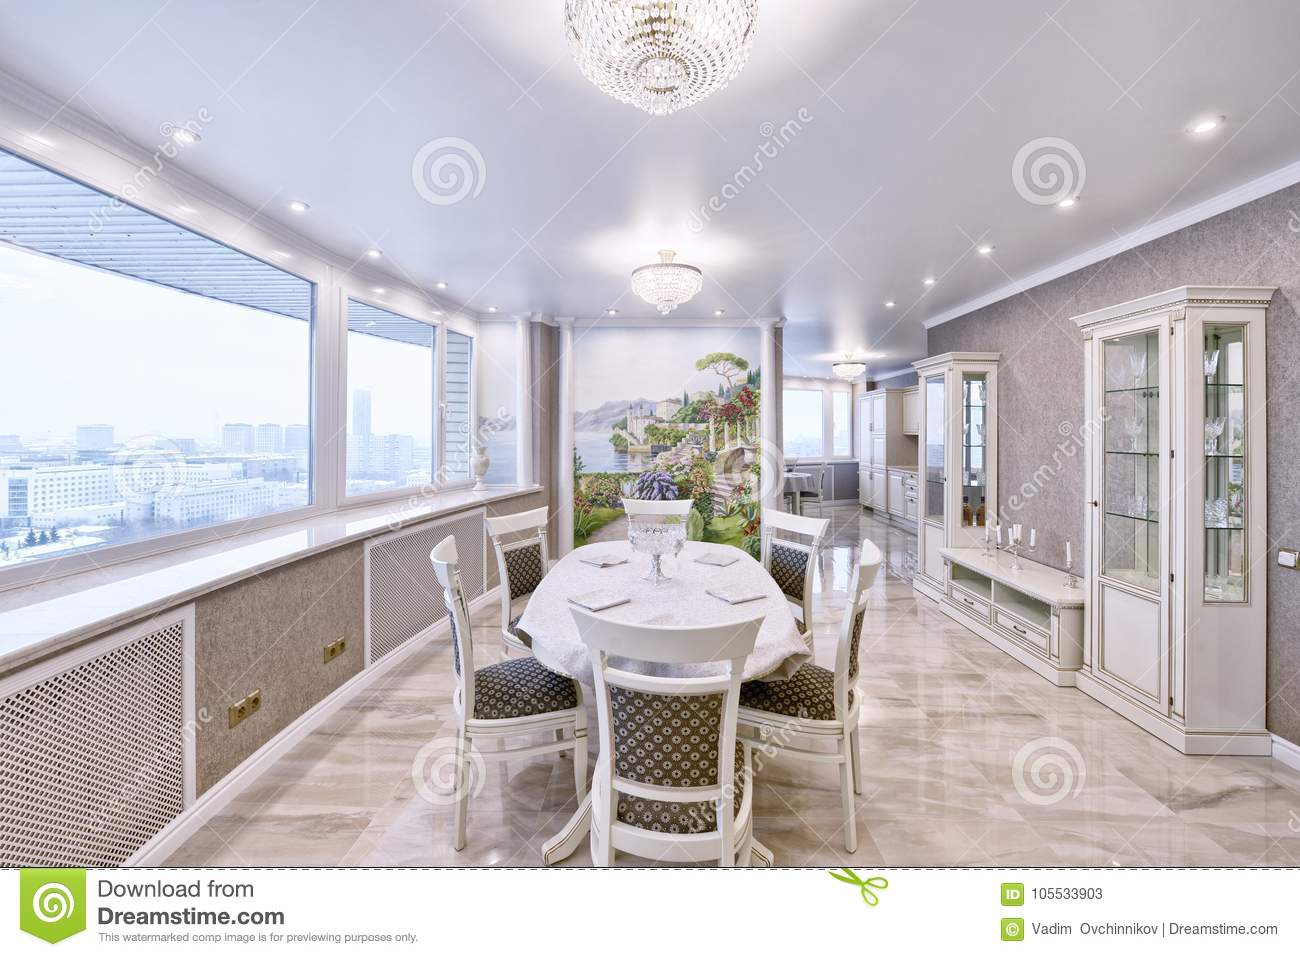 The interiors are new and modern apartment in light tones with designer renovation